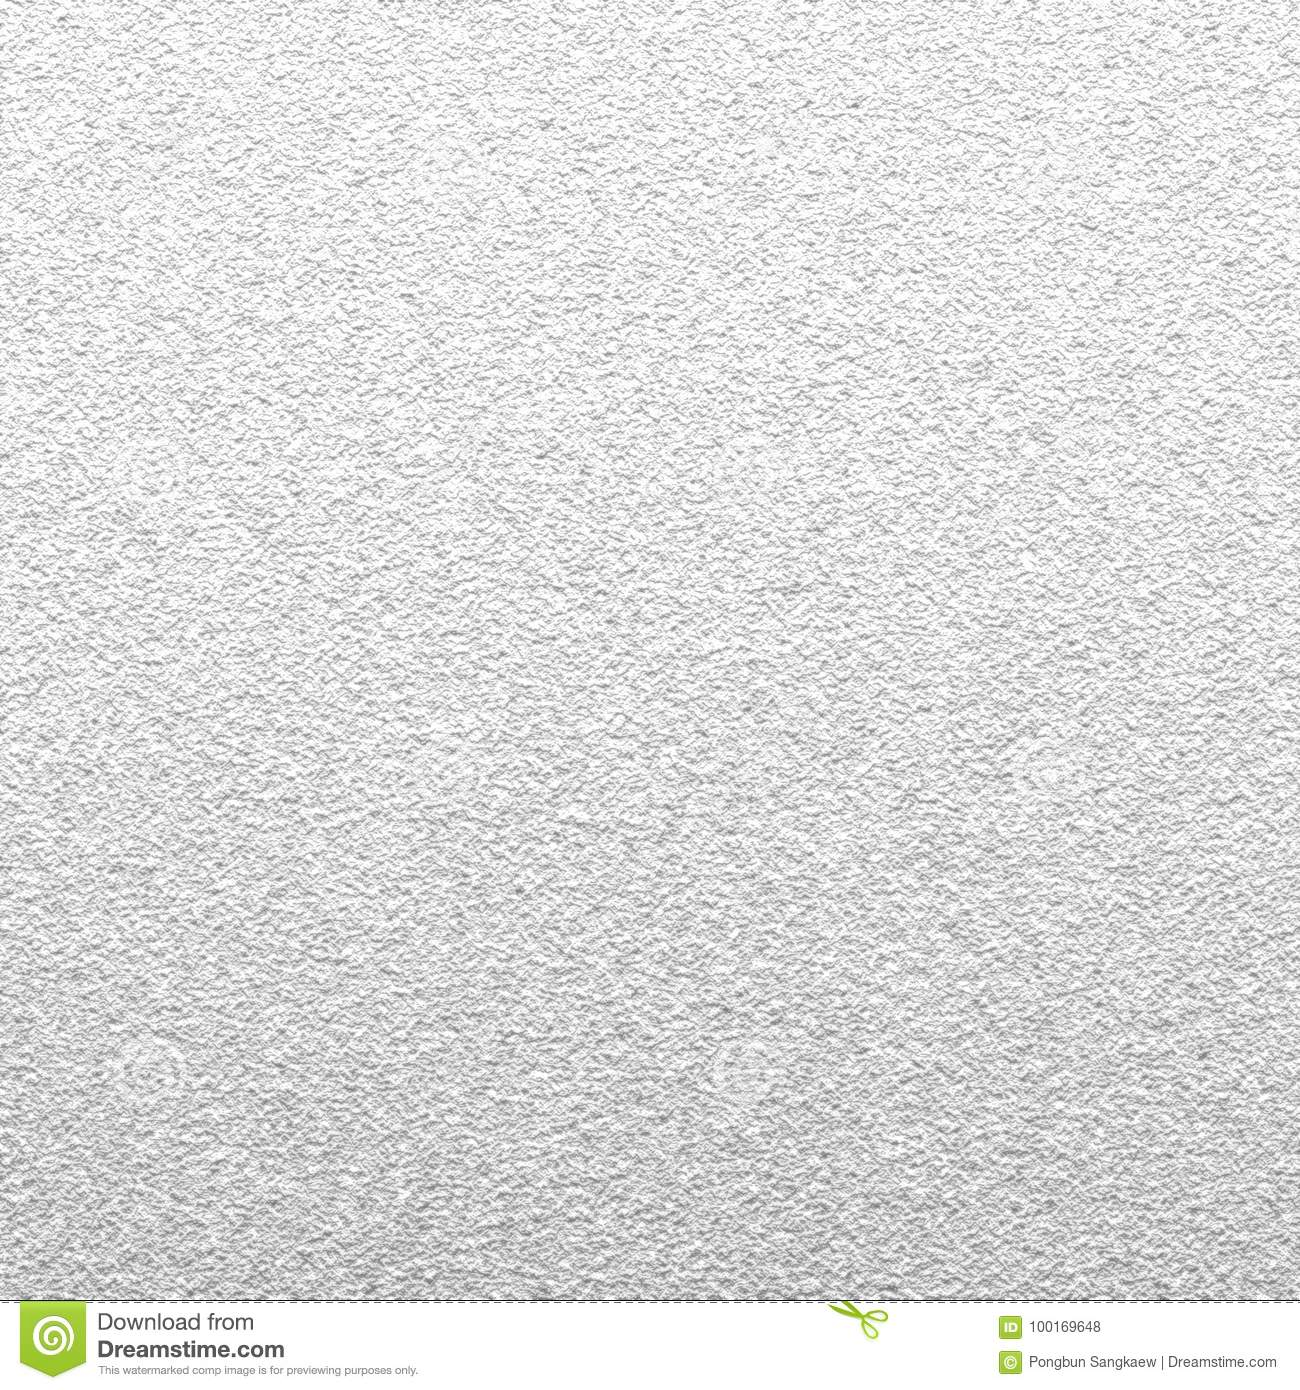 White and gray color grunge texture sponged background